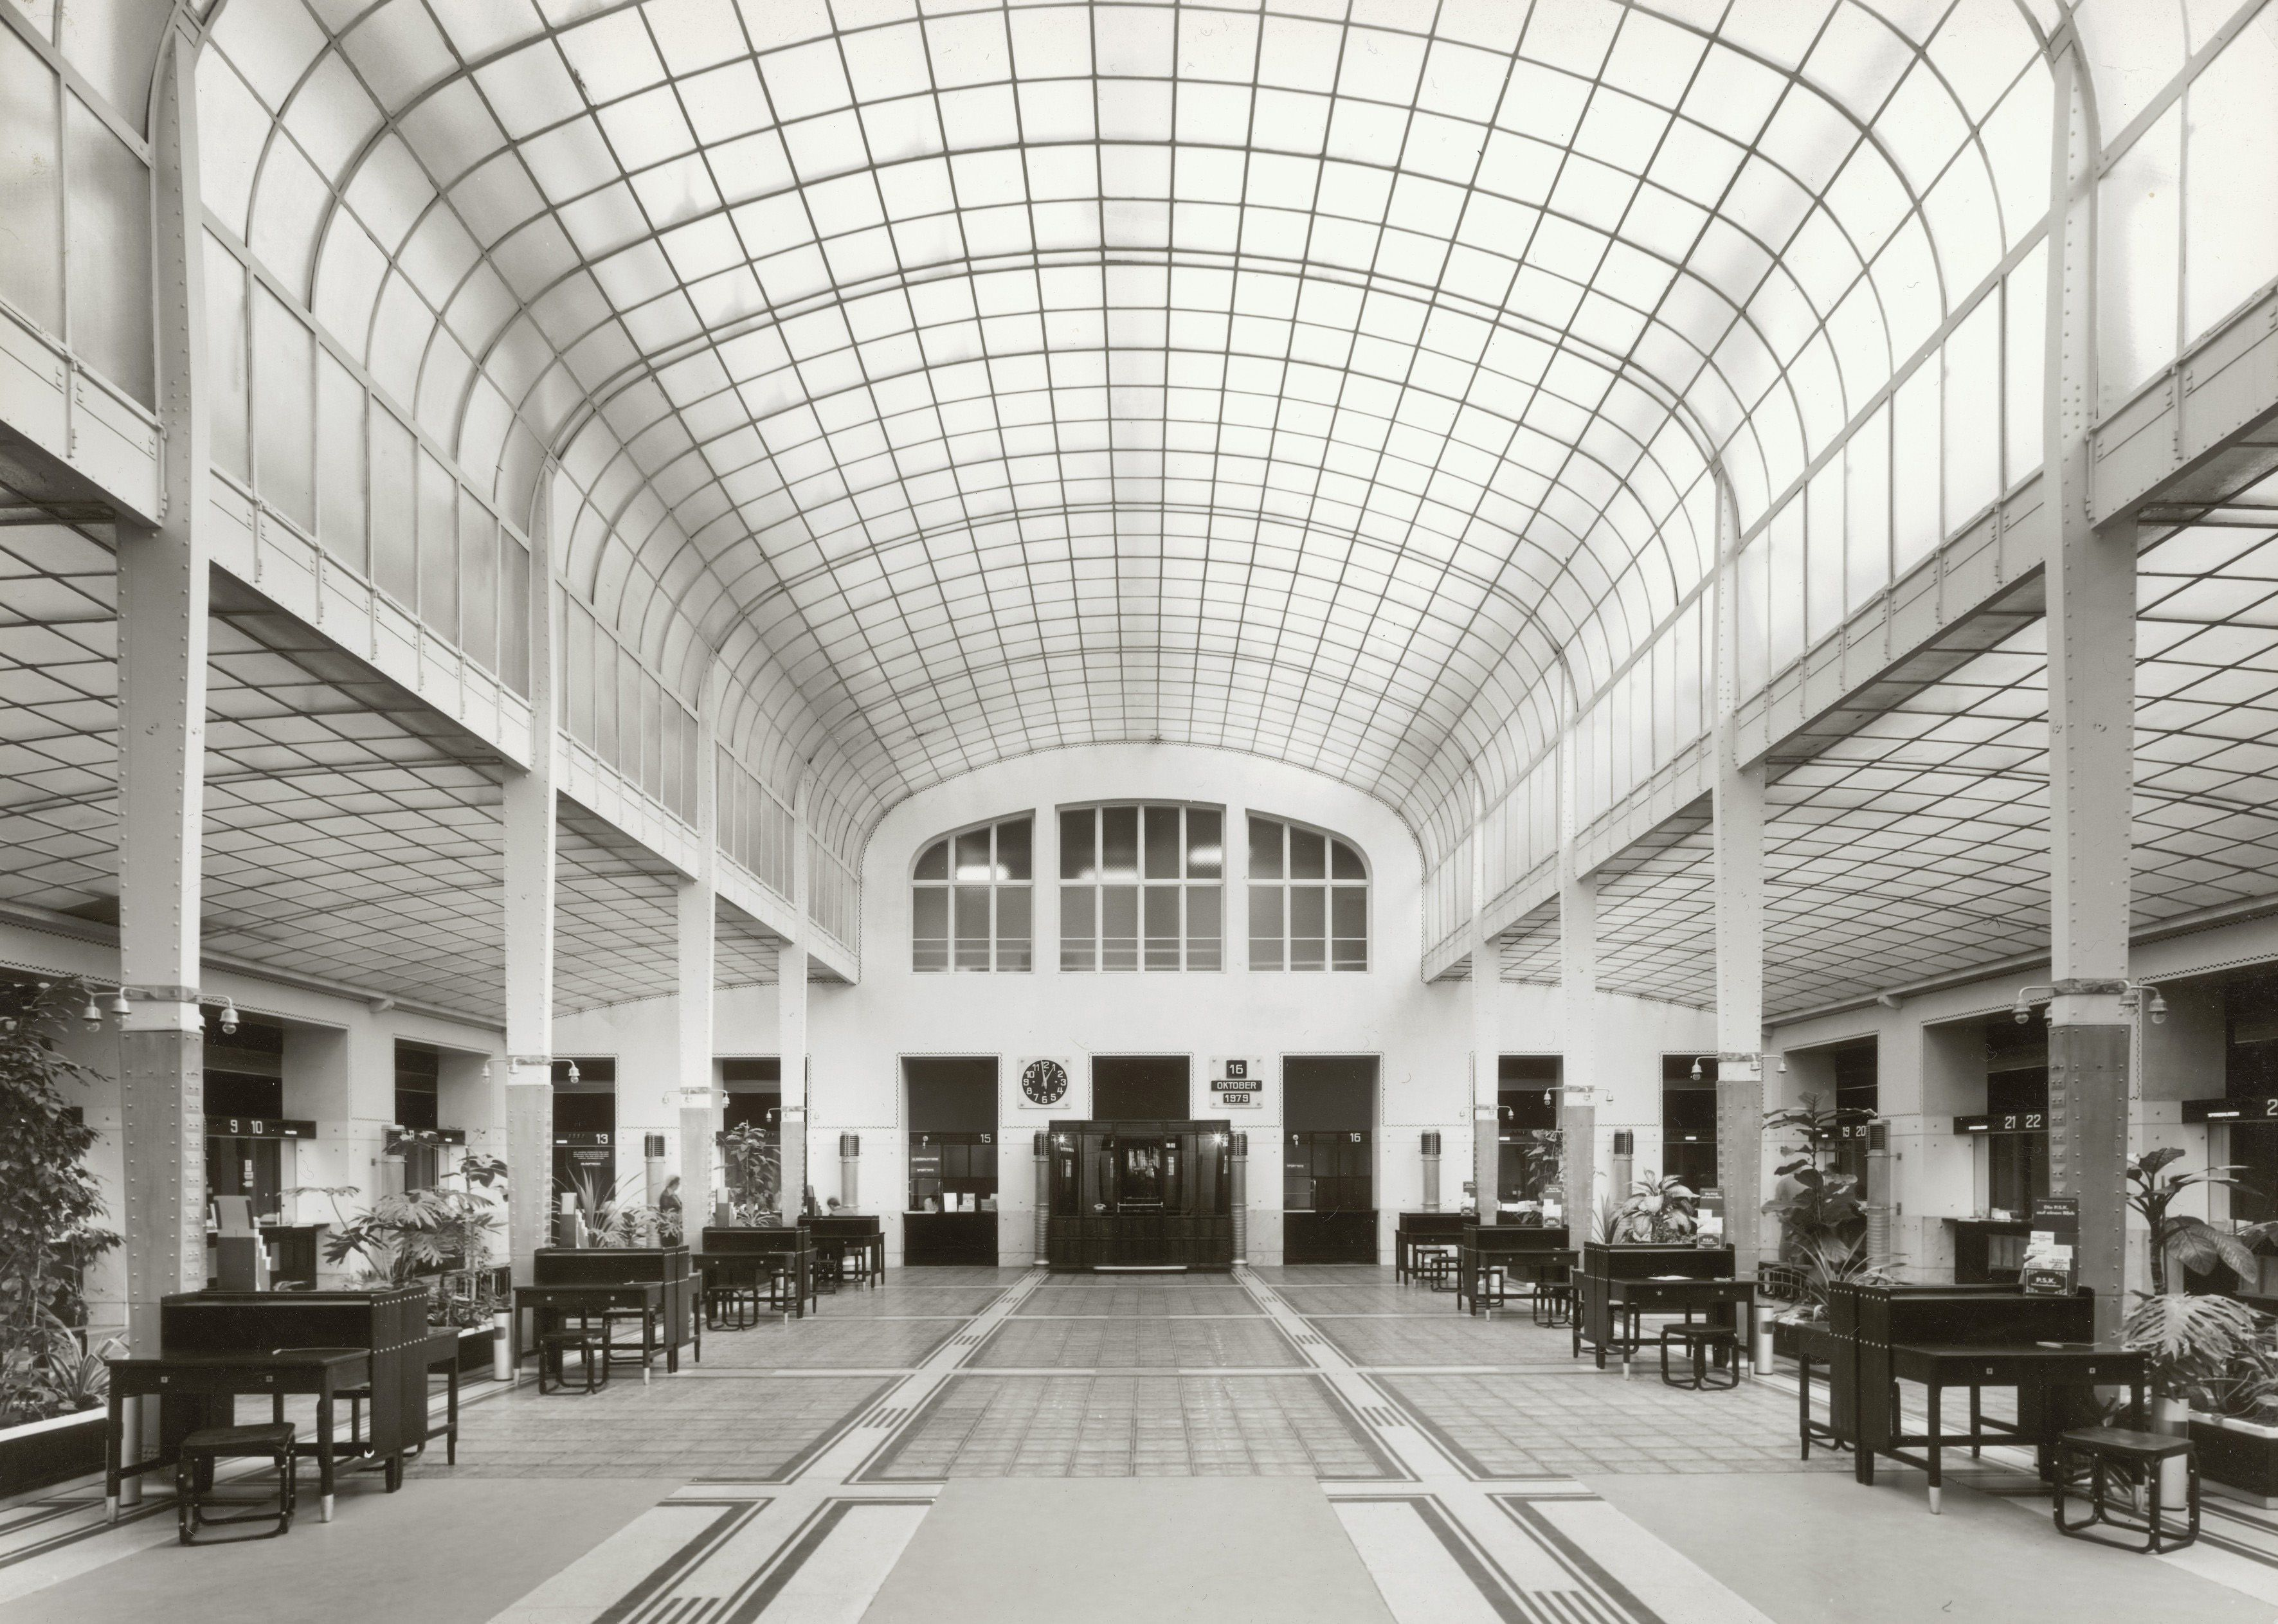 historic black and white photo of large interior, longer than wide, curved light ceiling, teller desks along each wall